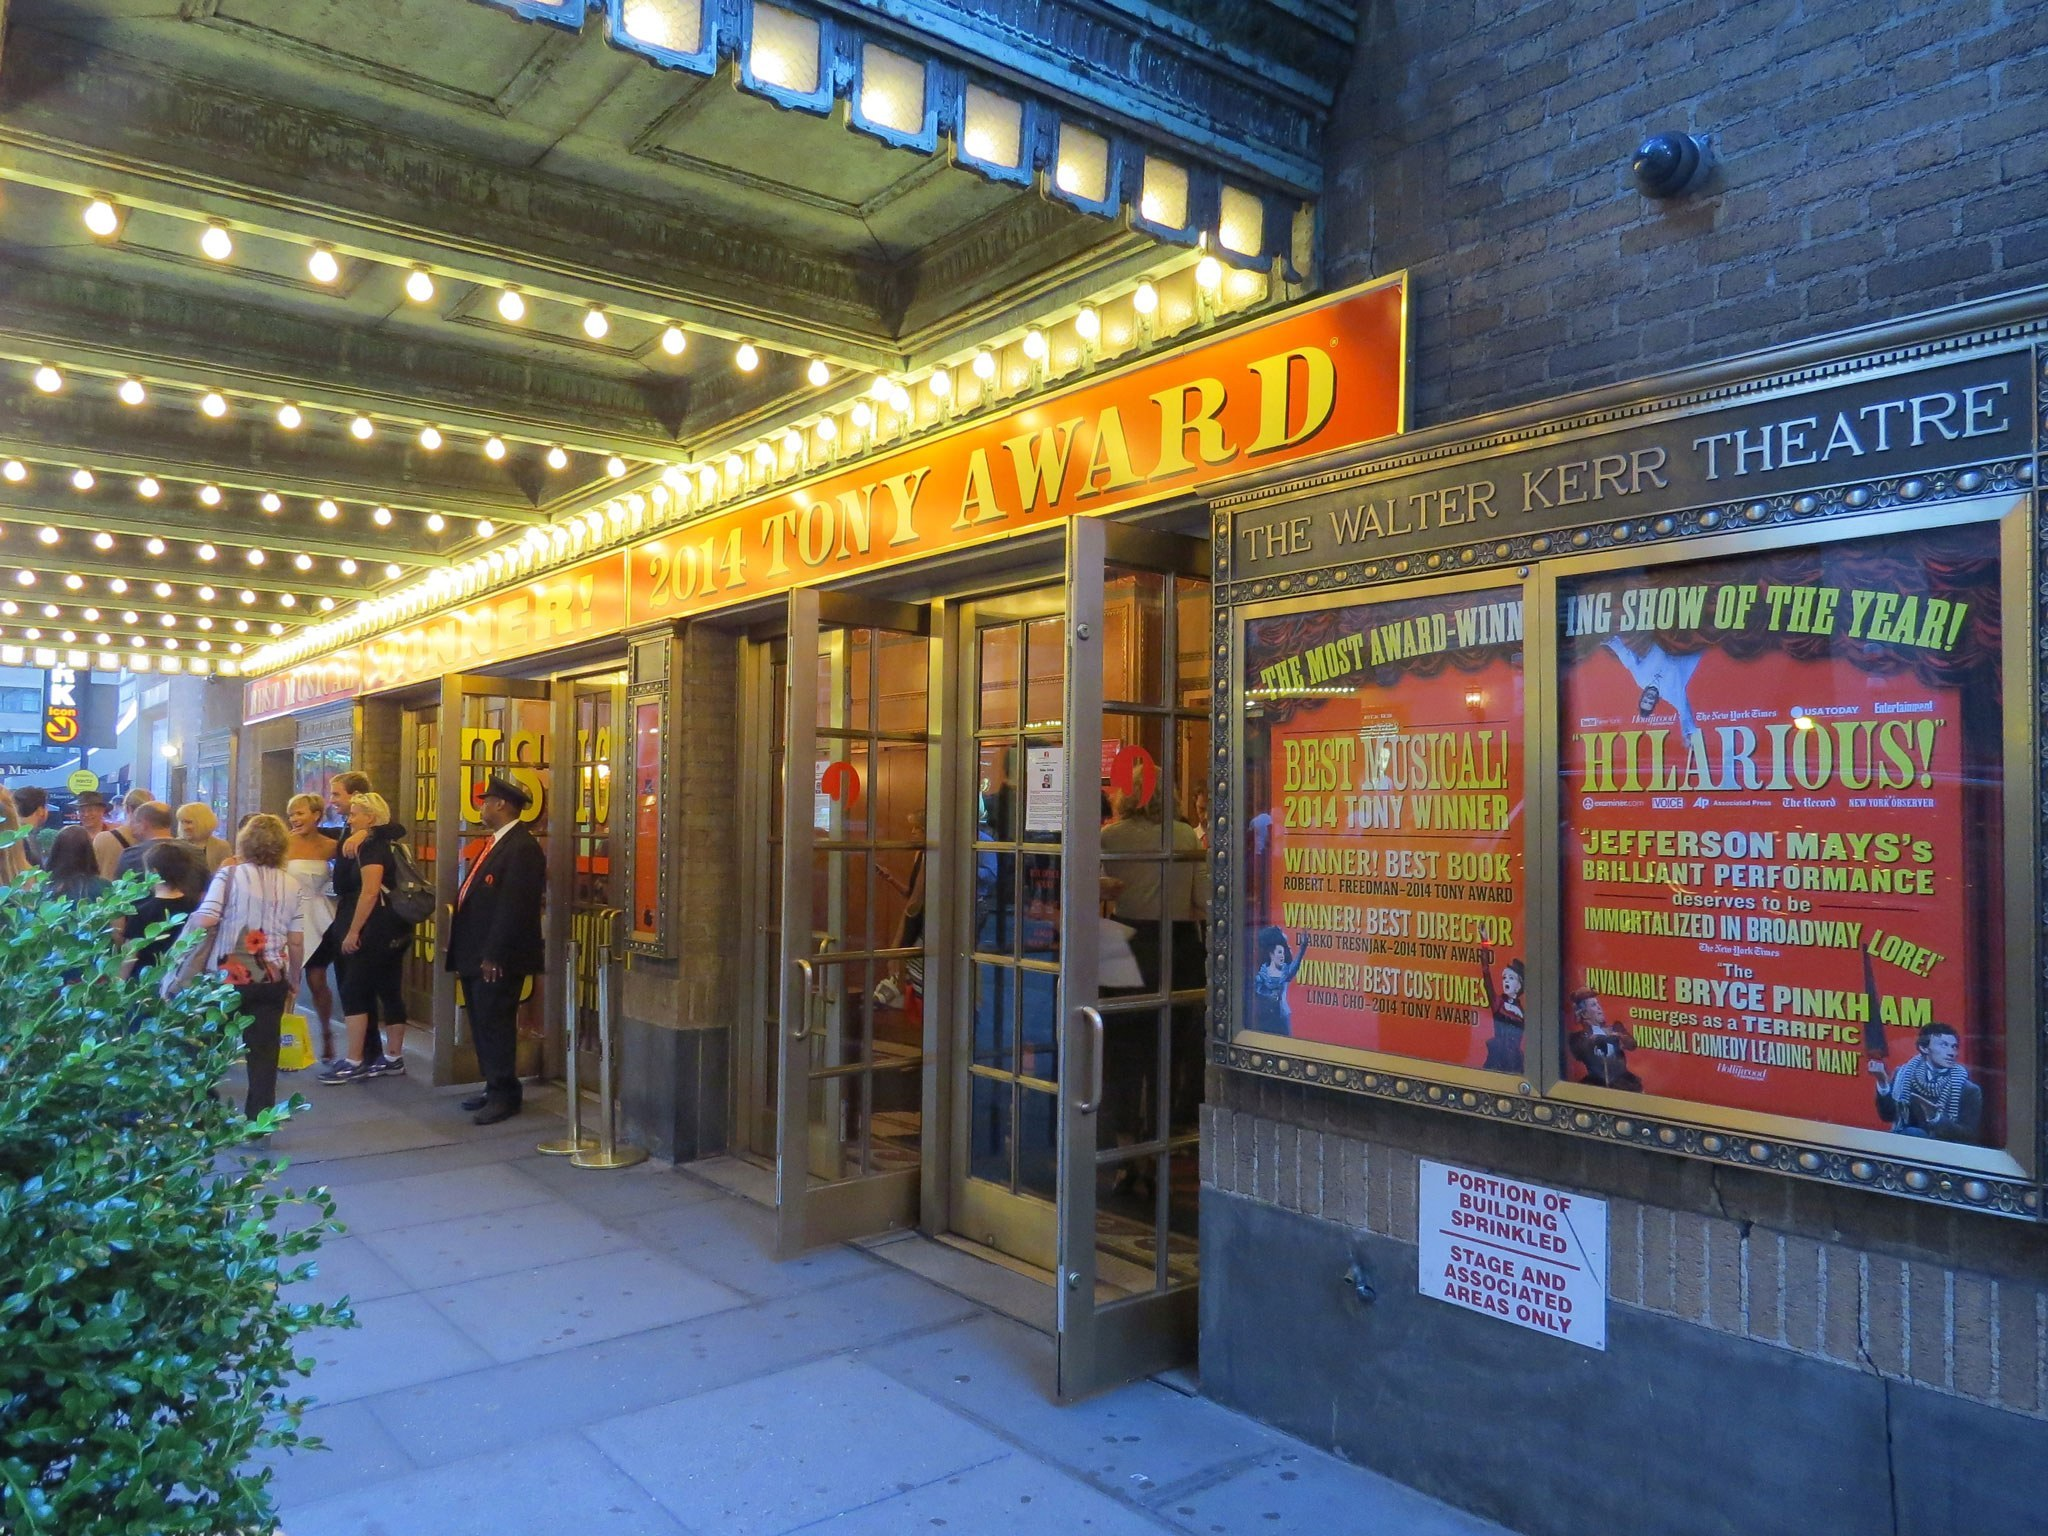 A Gentleman's Guide to Love and Murder Broadway Theatre Marquee